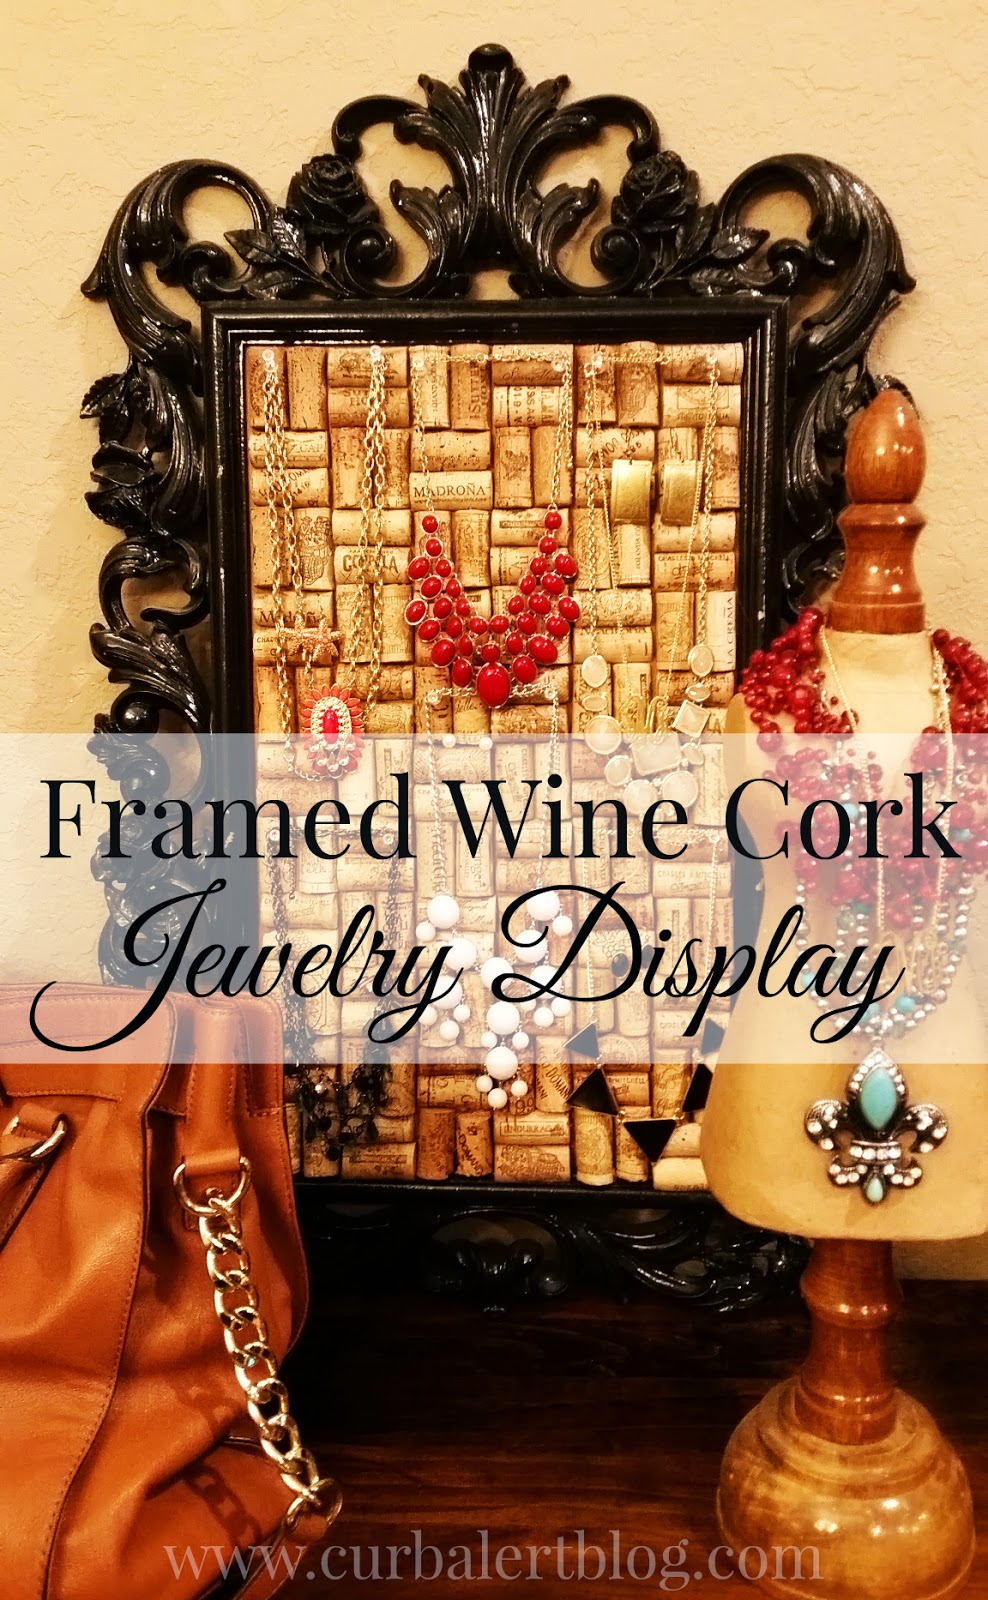 Framed Wine Cork Jewelry Display via Curb Alert! www.curbalertblog.com